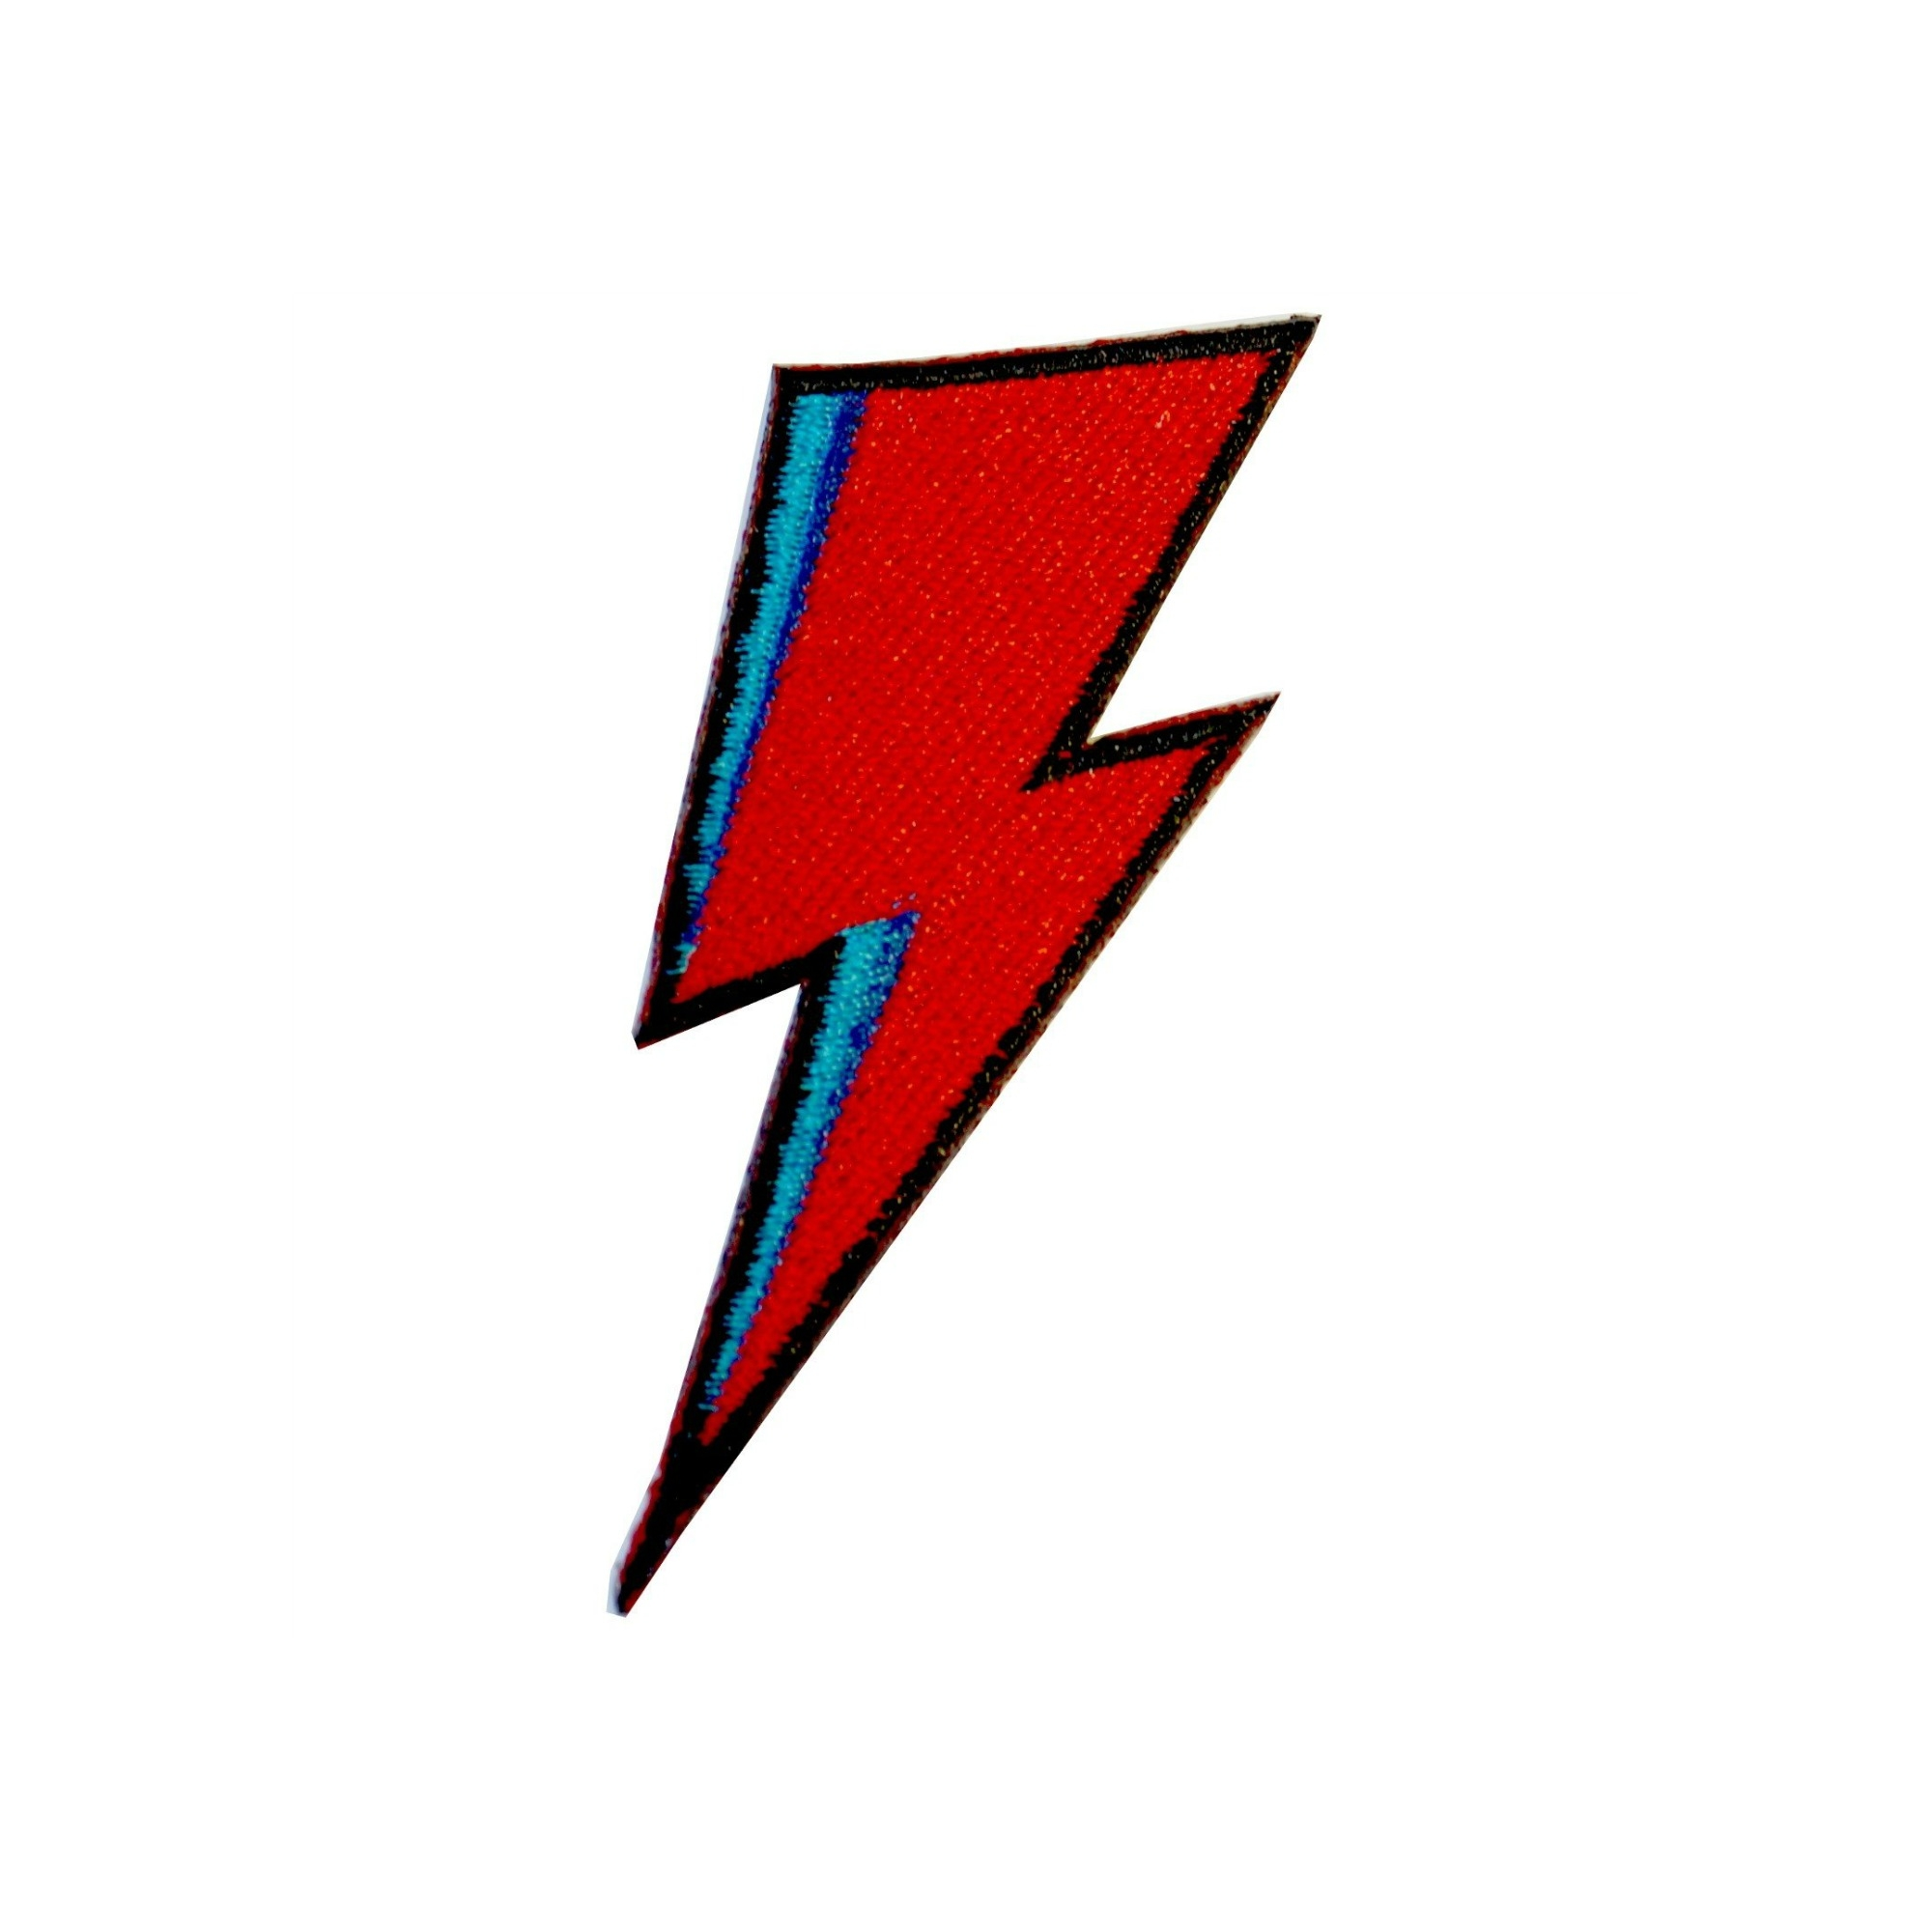 Details about David Bowie Lightning Bolt Iron On Patch Ziggy Satrdust Gift  Clothing Transfer A.